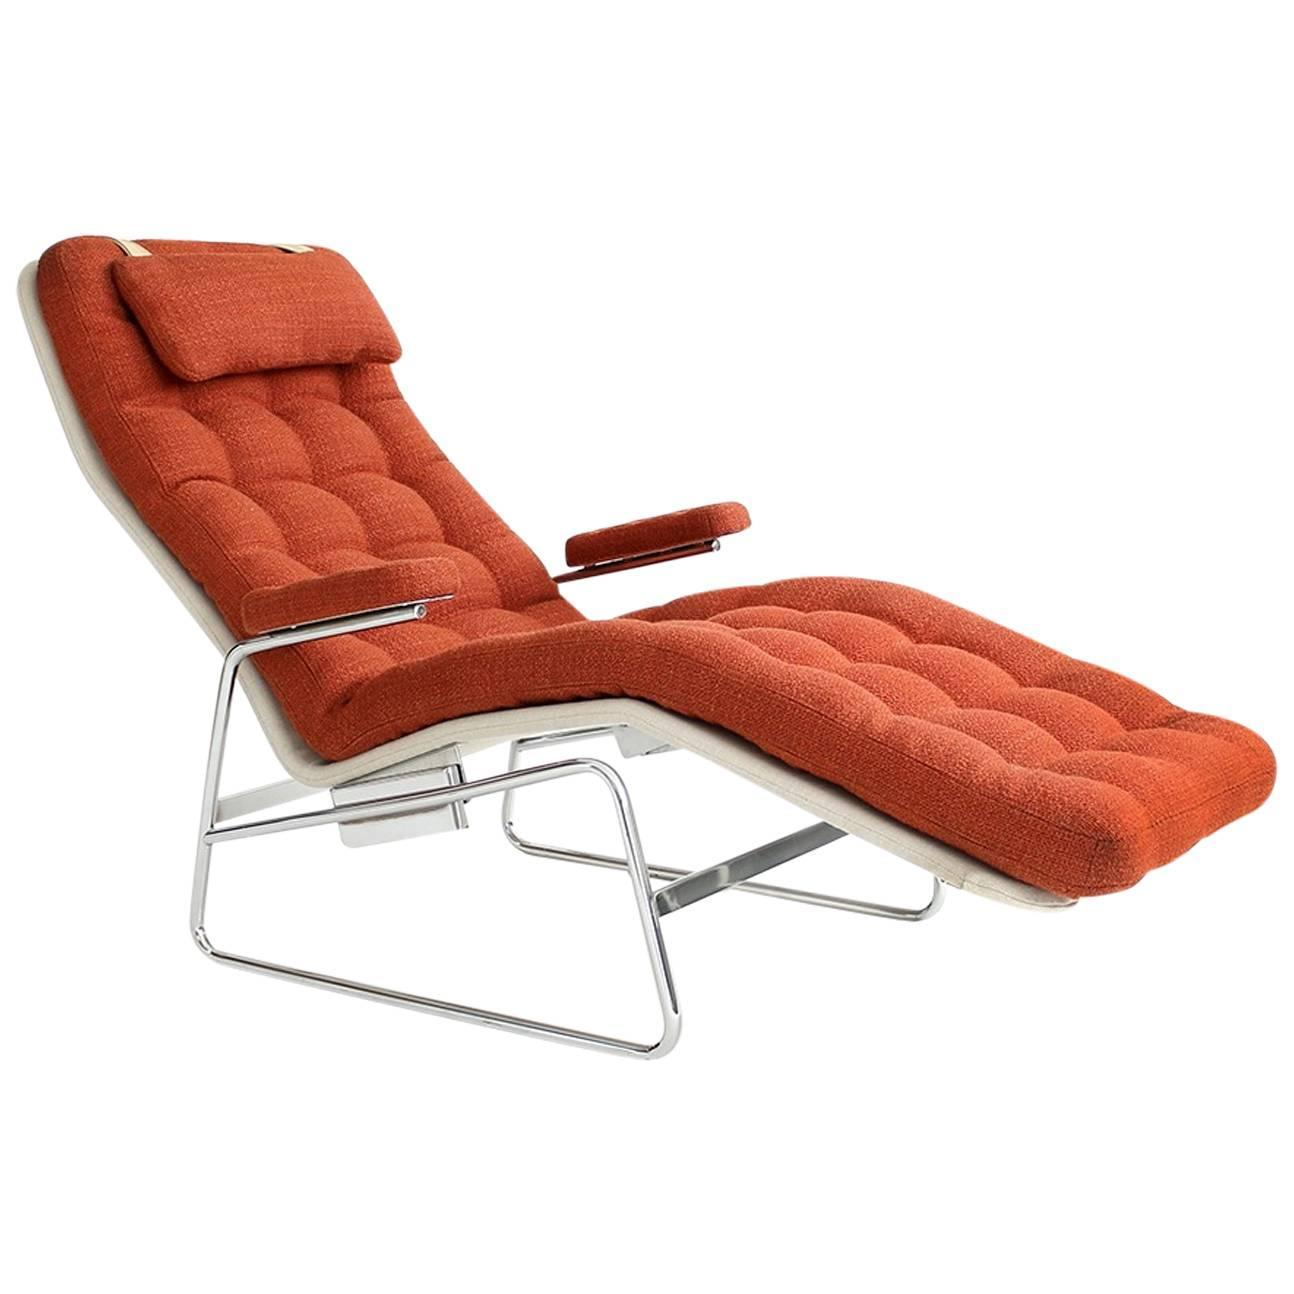 sc 1 st  1stDibs & Sam Larsson u0027Fenixu0027 Reclining Lounge Chair by DUX For Sale at 1stdibs islam-shia.org